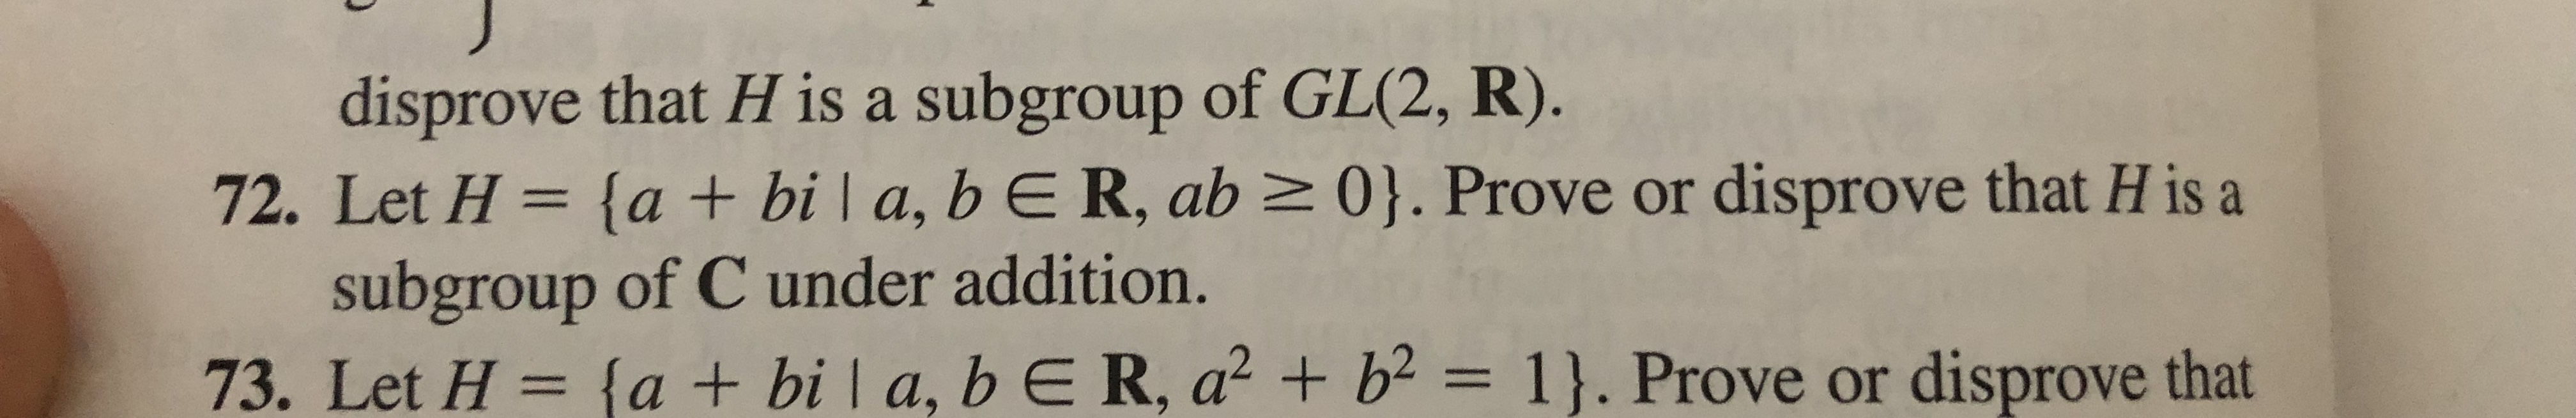 disprove that H is a subgroup of GL(2, R). 72. Let H {a + bi | a, b E R, ab 0}. Prove or disprove that H is a subgroup of C under addition. 73. Let H= {a + bi a, b E R, a2 b= 1}. Prove or disprove that